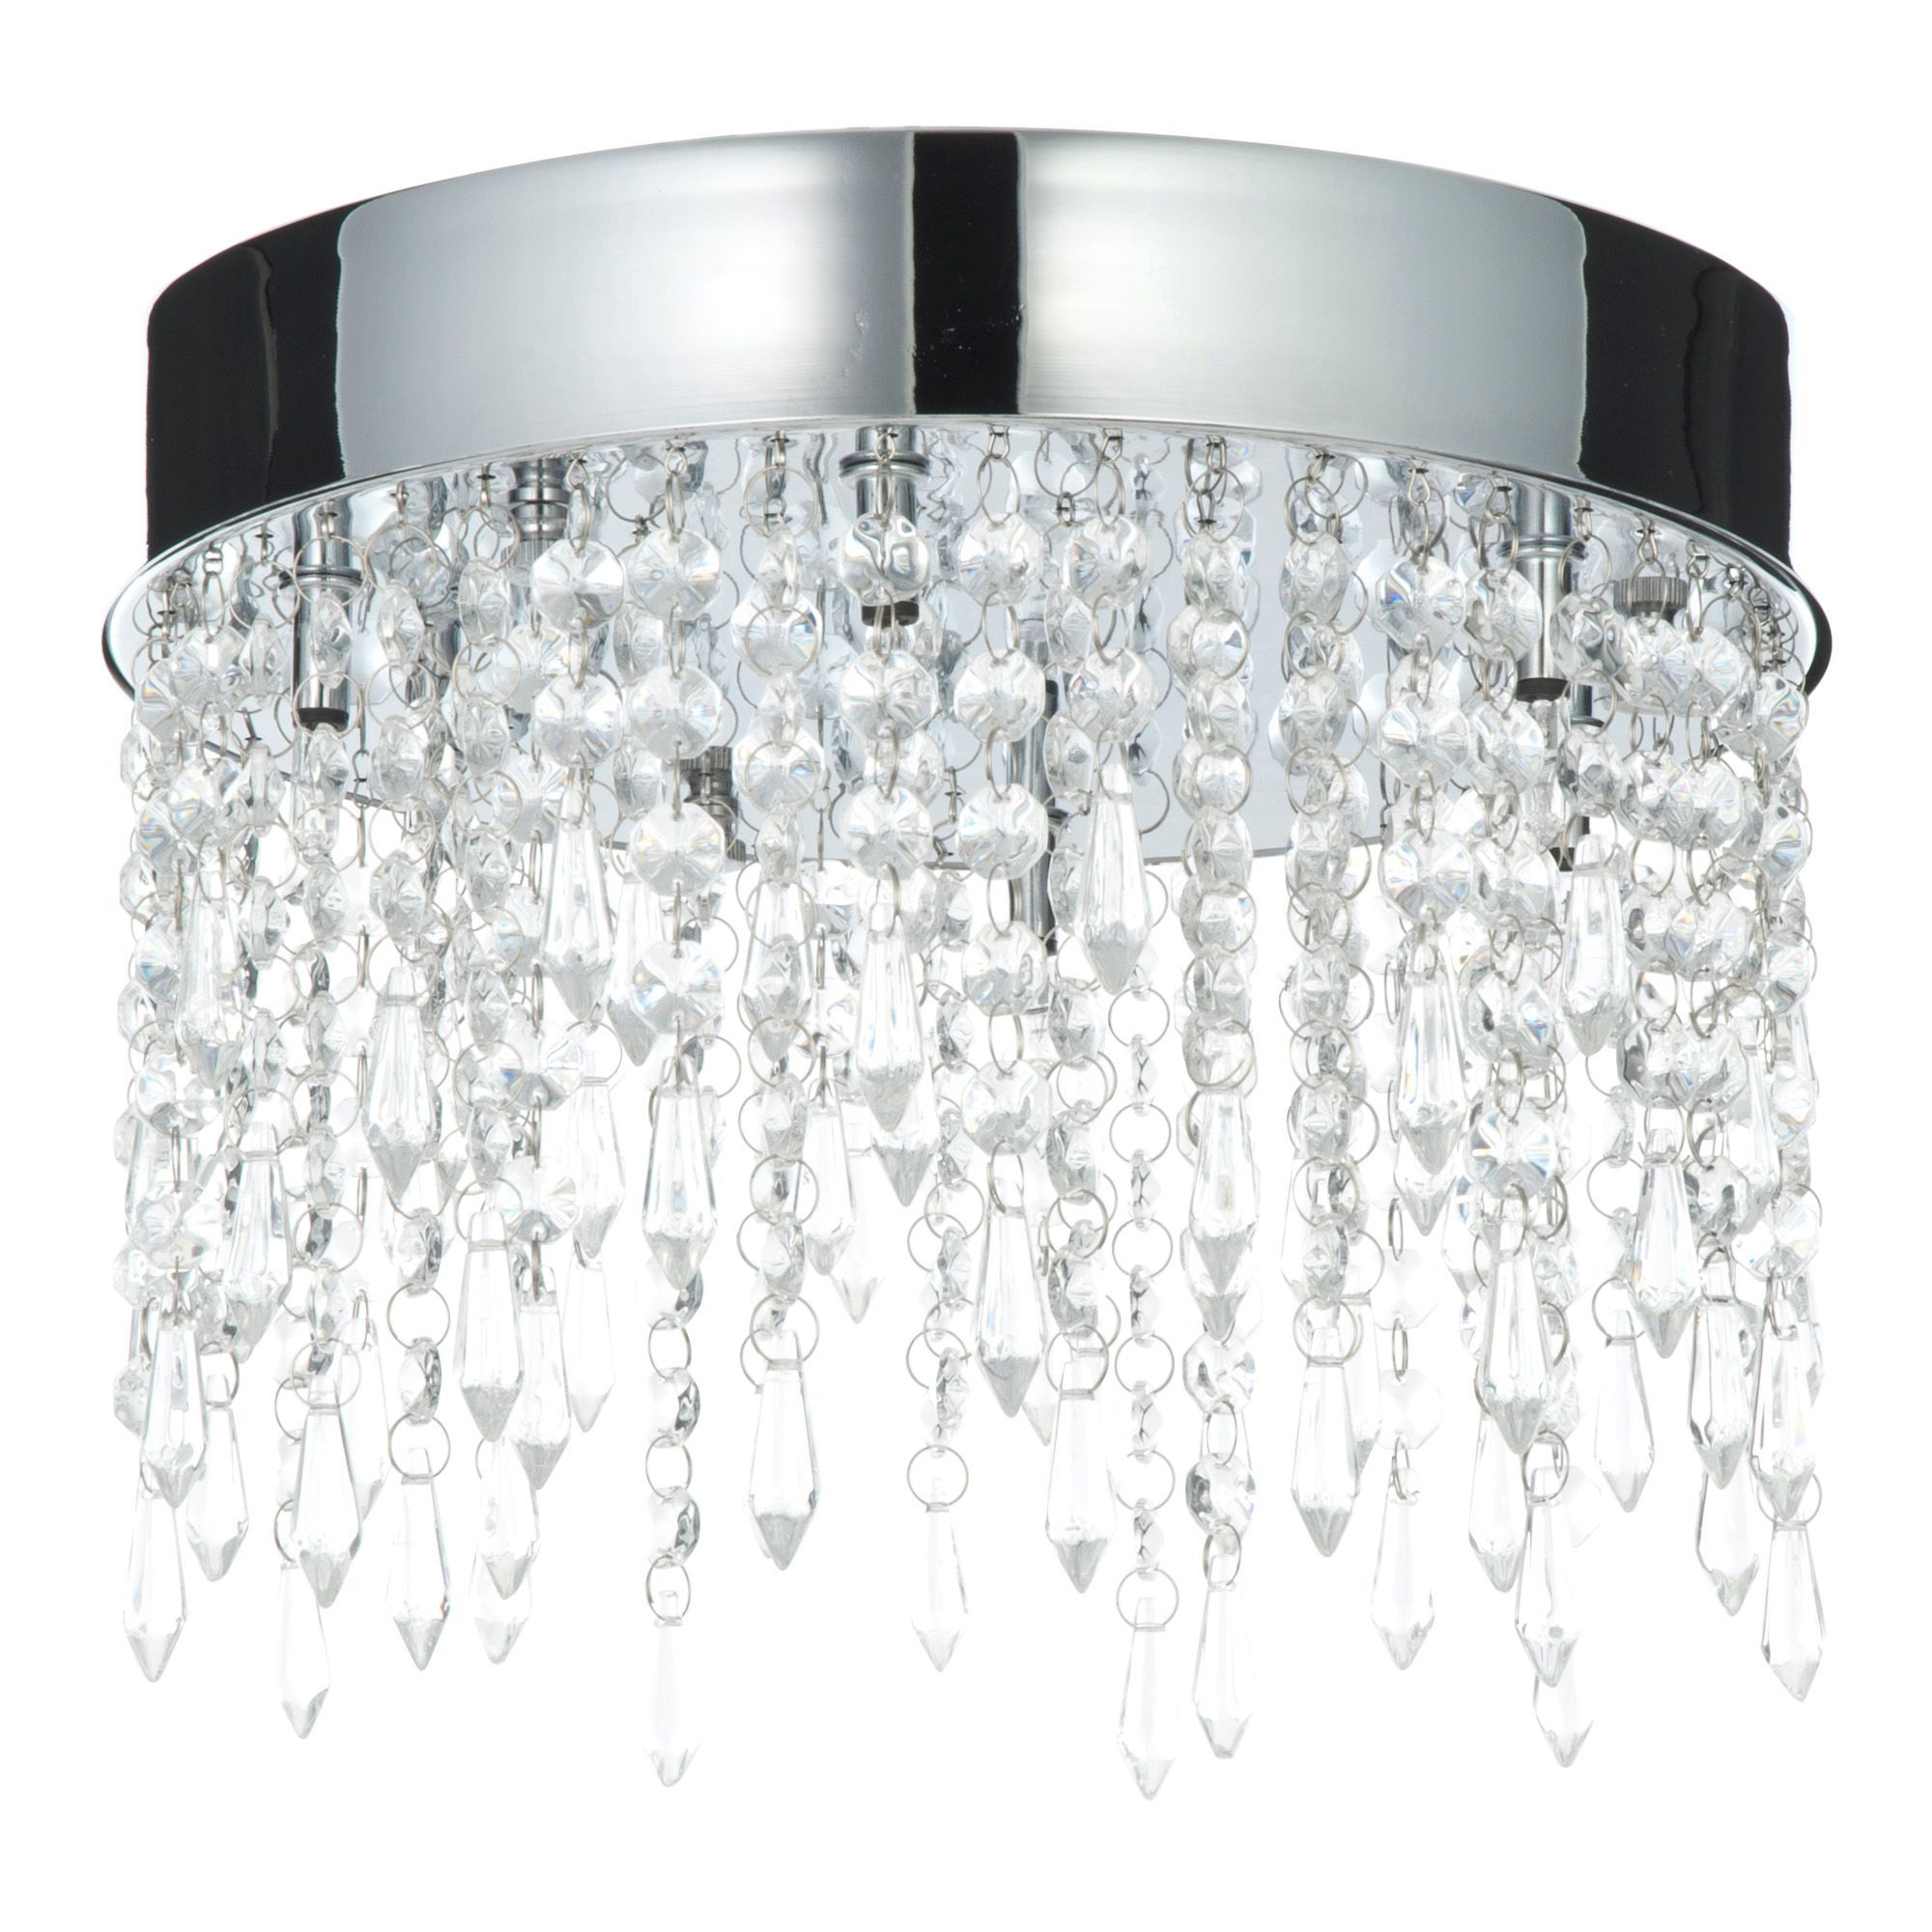 Sabine crystal droplets clear 6 lamp flush ceiling light ceiling sabine crystal droplets clear 6 lamp flush ceiling light mozeypictures Image collections